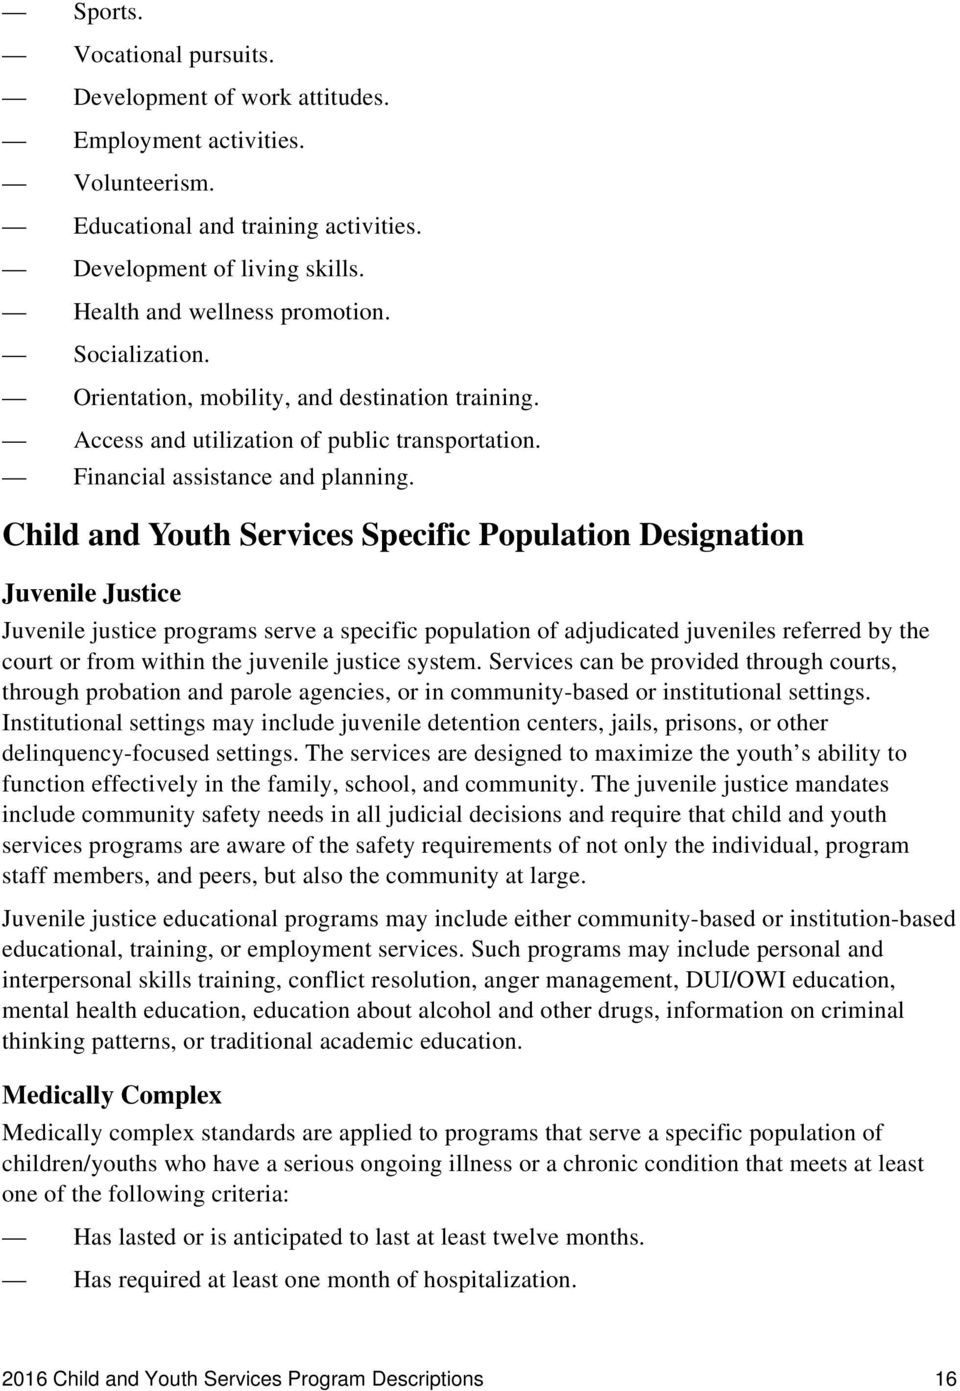 Child and Youth Services Specific Population Designation Juvenile Justice Juvenile justice programs serve a specific population of adjudicated juveniles referred by the court or from within the